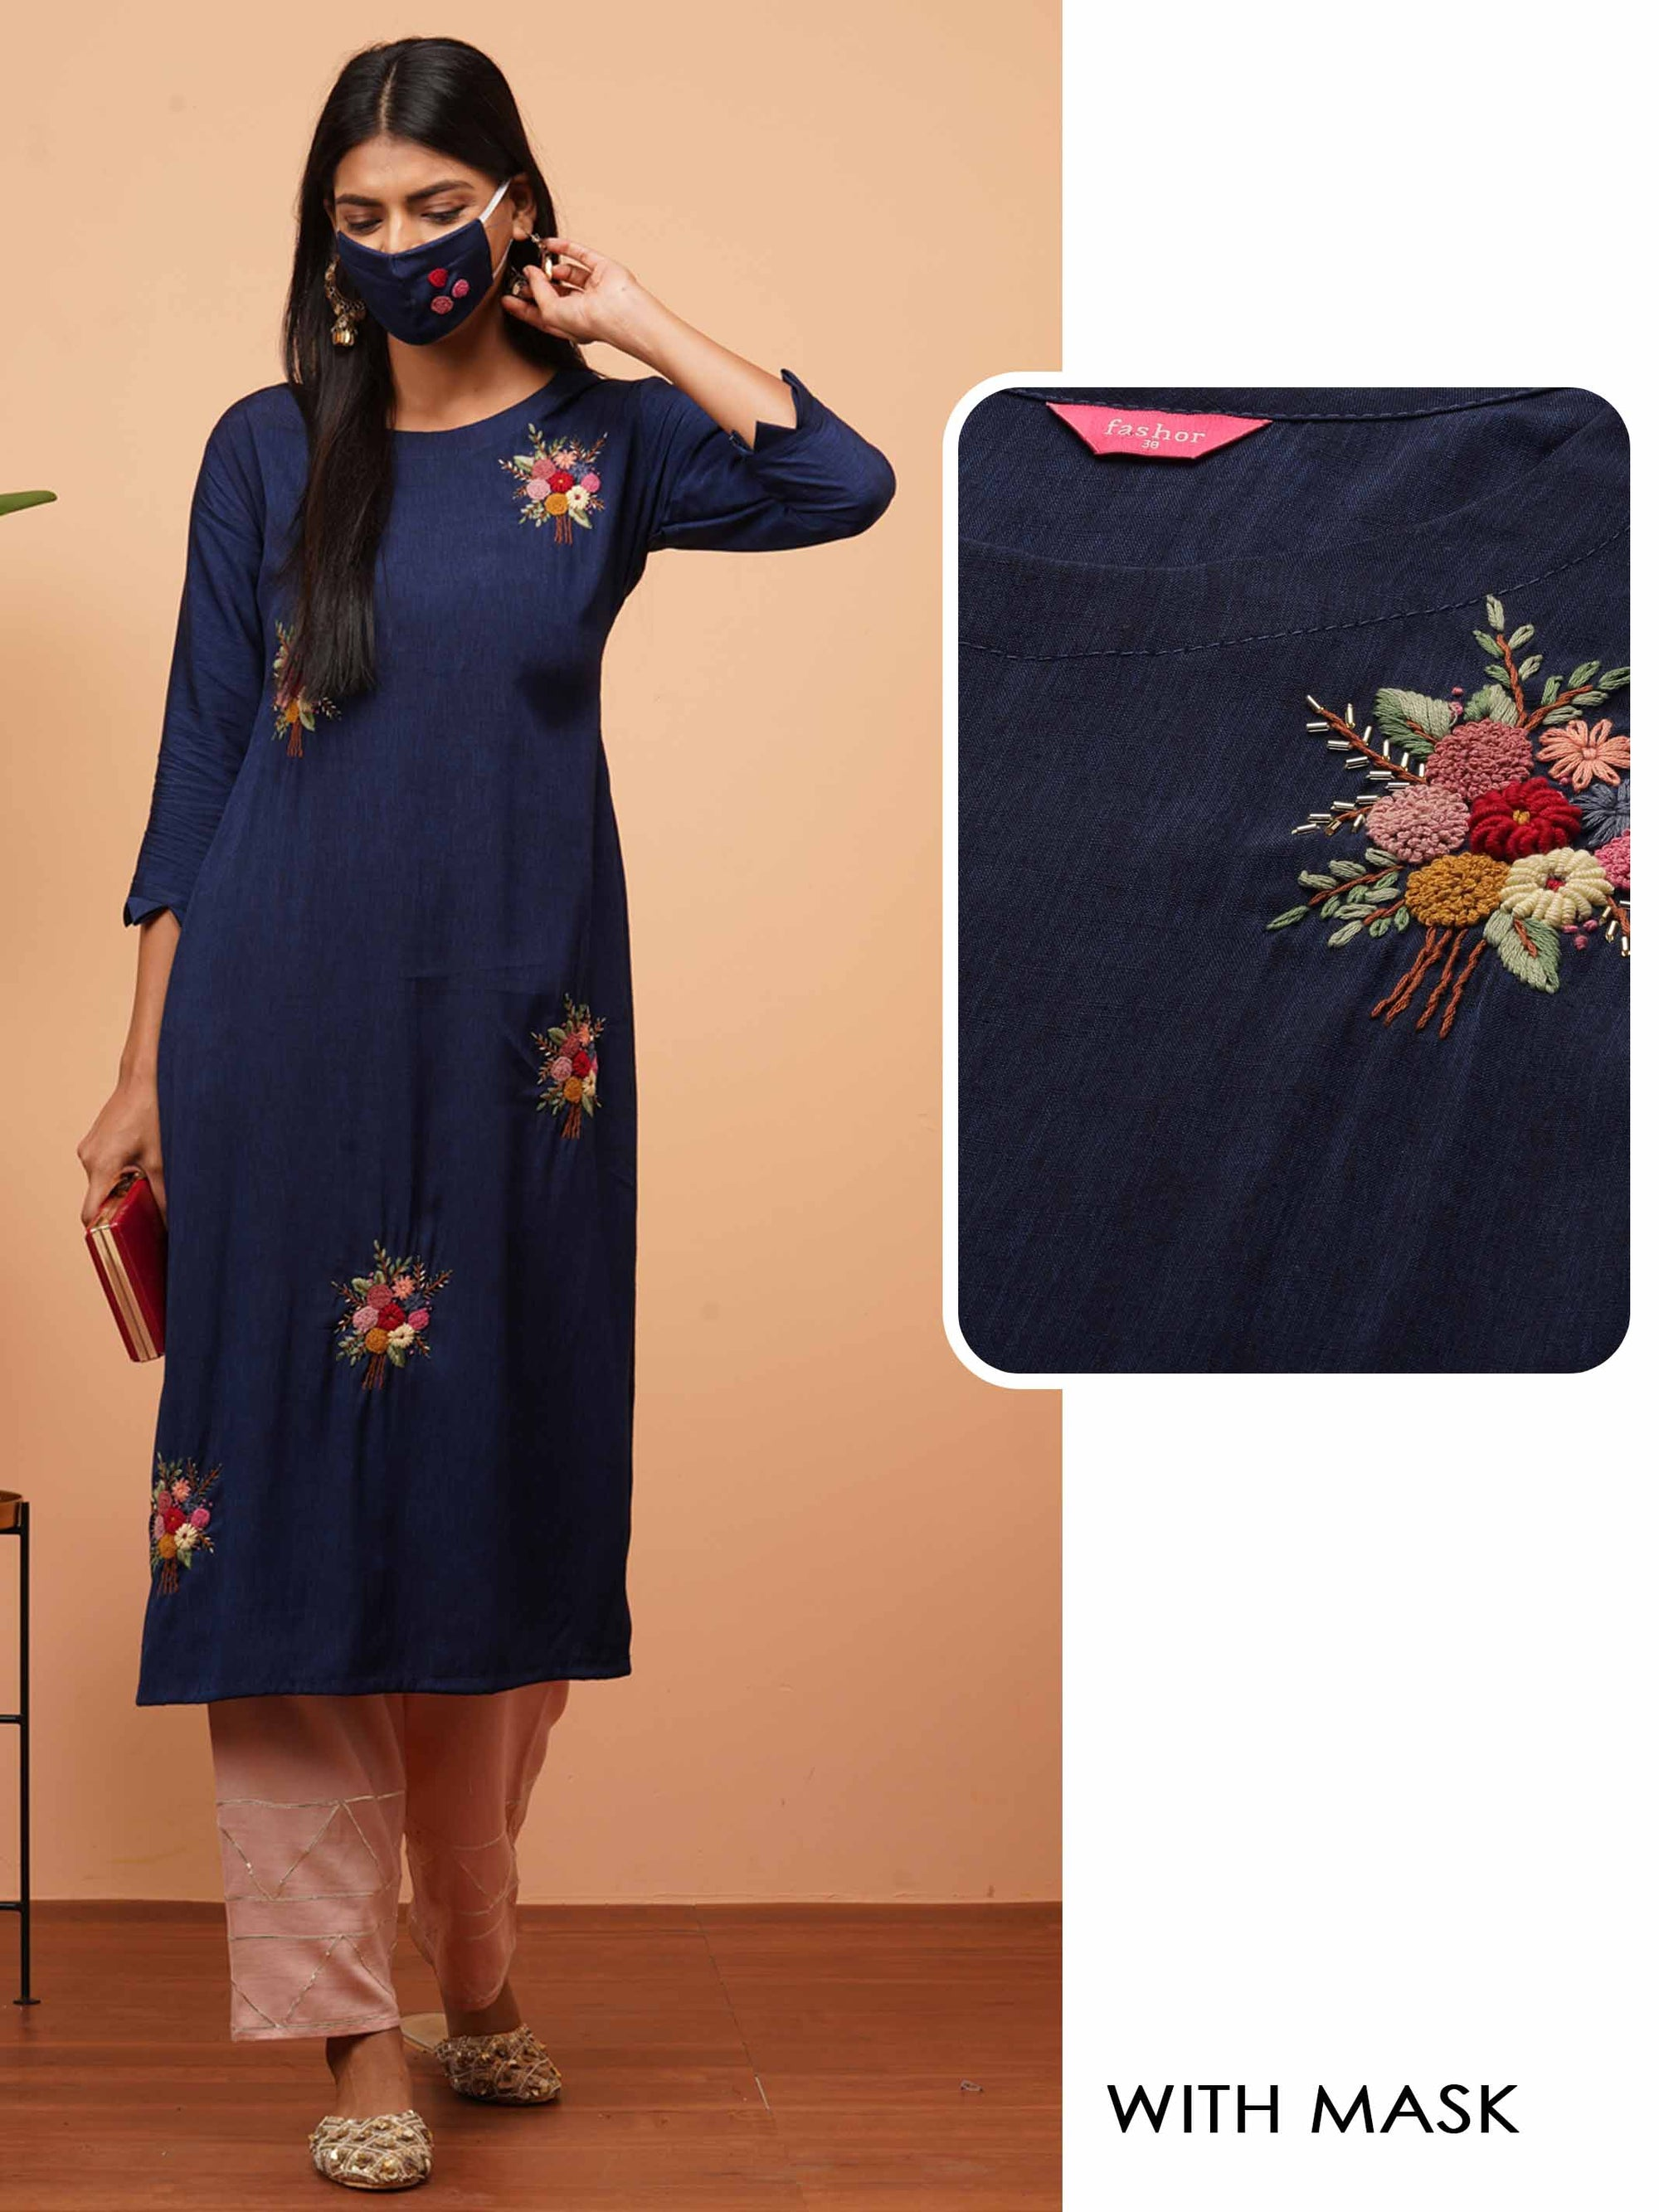 Bullion Knot Floral Embroidered Straight Kurta with Embroidered 2-Ply Mask - Navy Blue